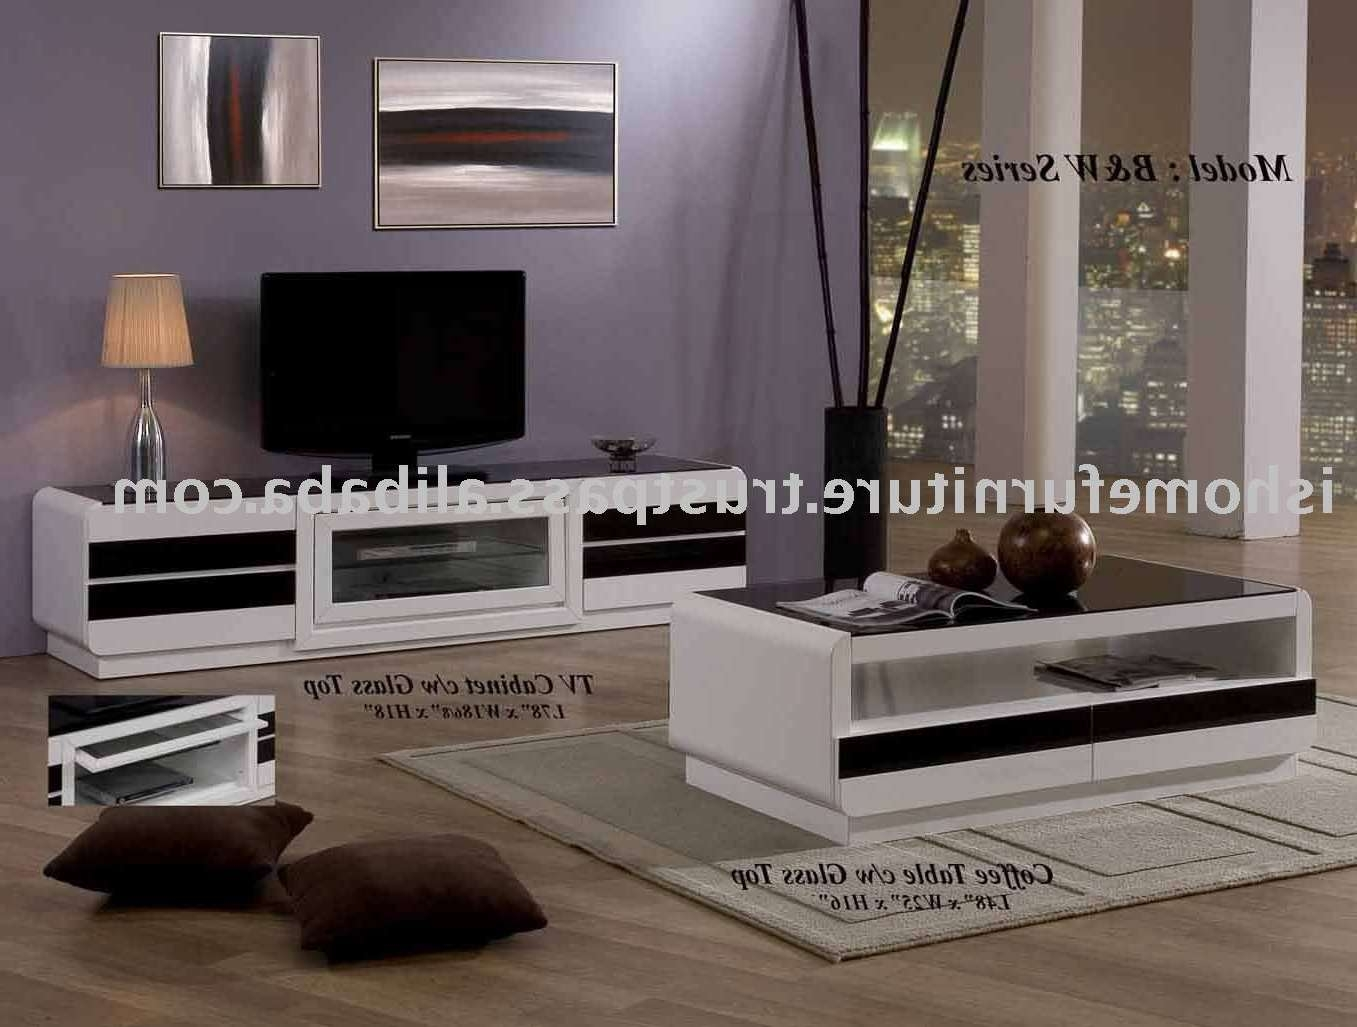 B&w Series – Coffee Table,tv Stand – Buy Home Furniture,coffee Intended For Tv Cabinets And Coffee Table Sets (View 7 of 20)